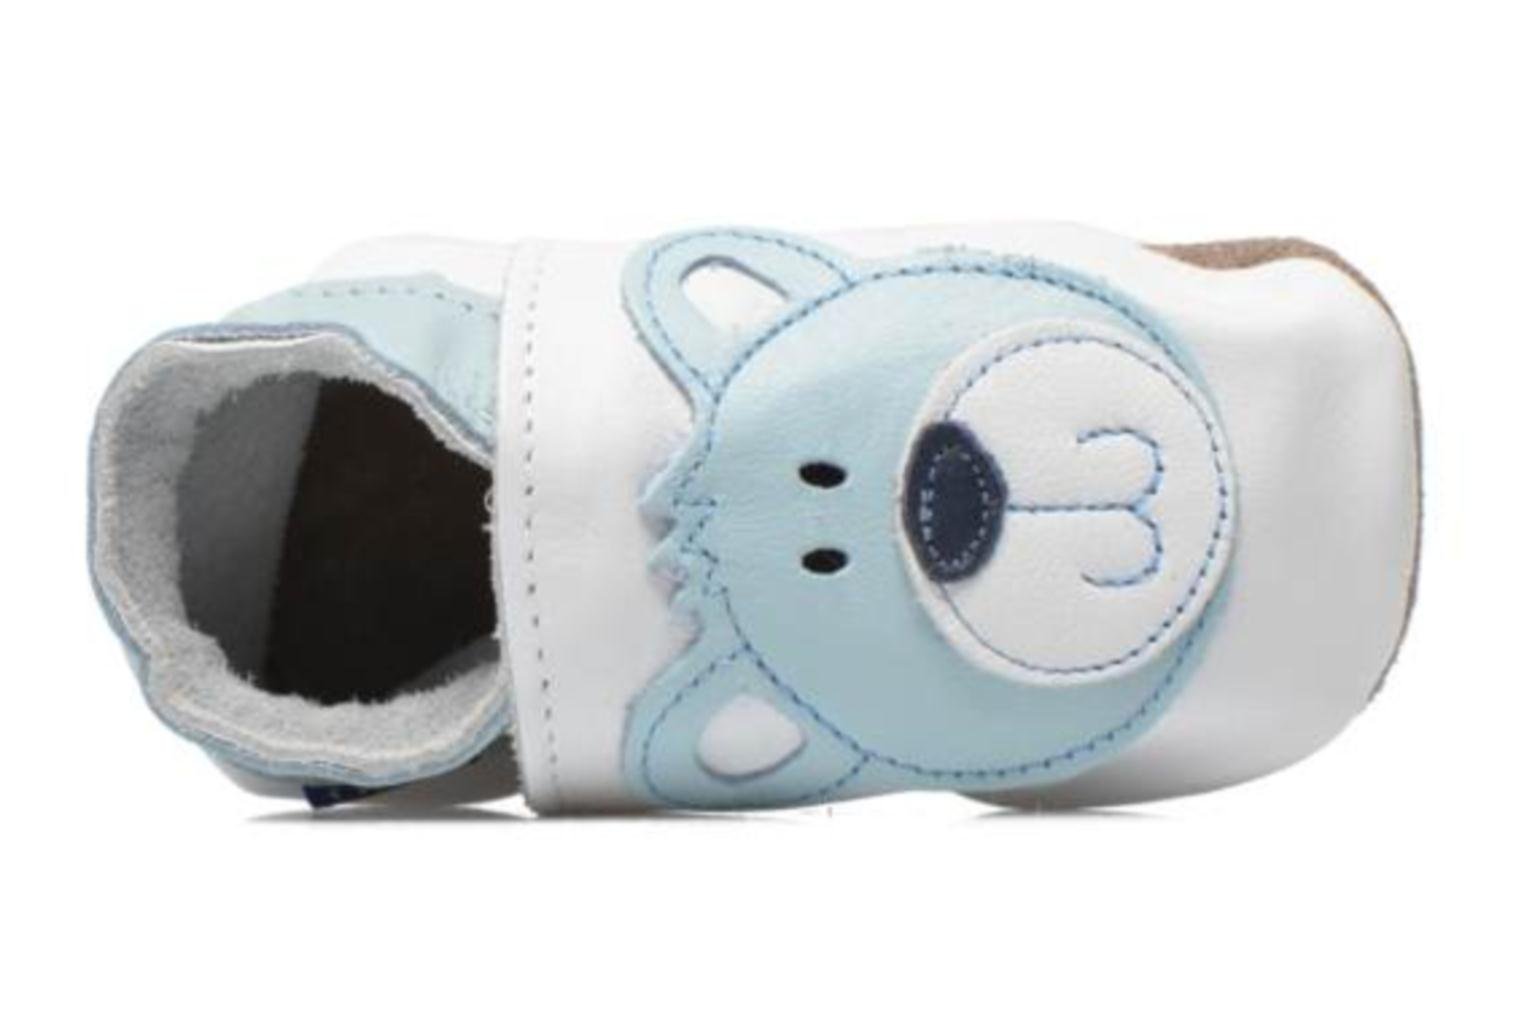 Pantuflas Inch Blue Teddy Blue Blanco vista lateral izquierda